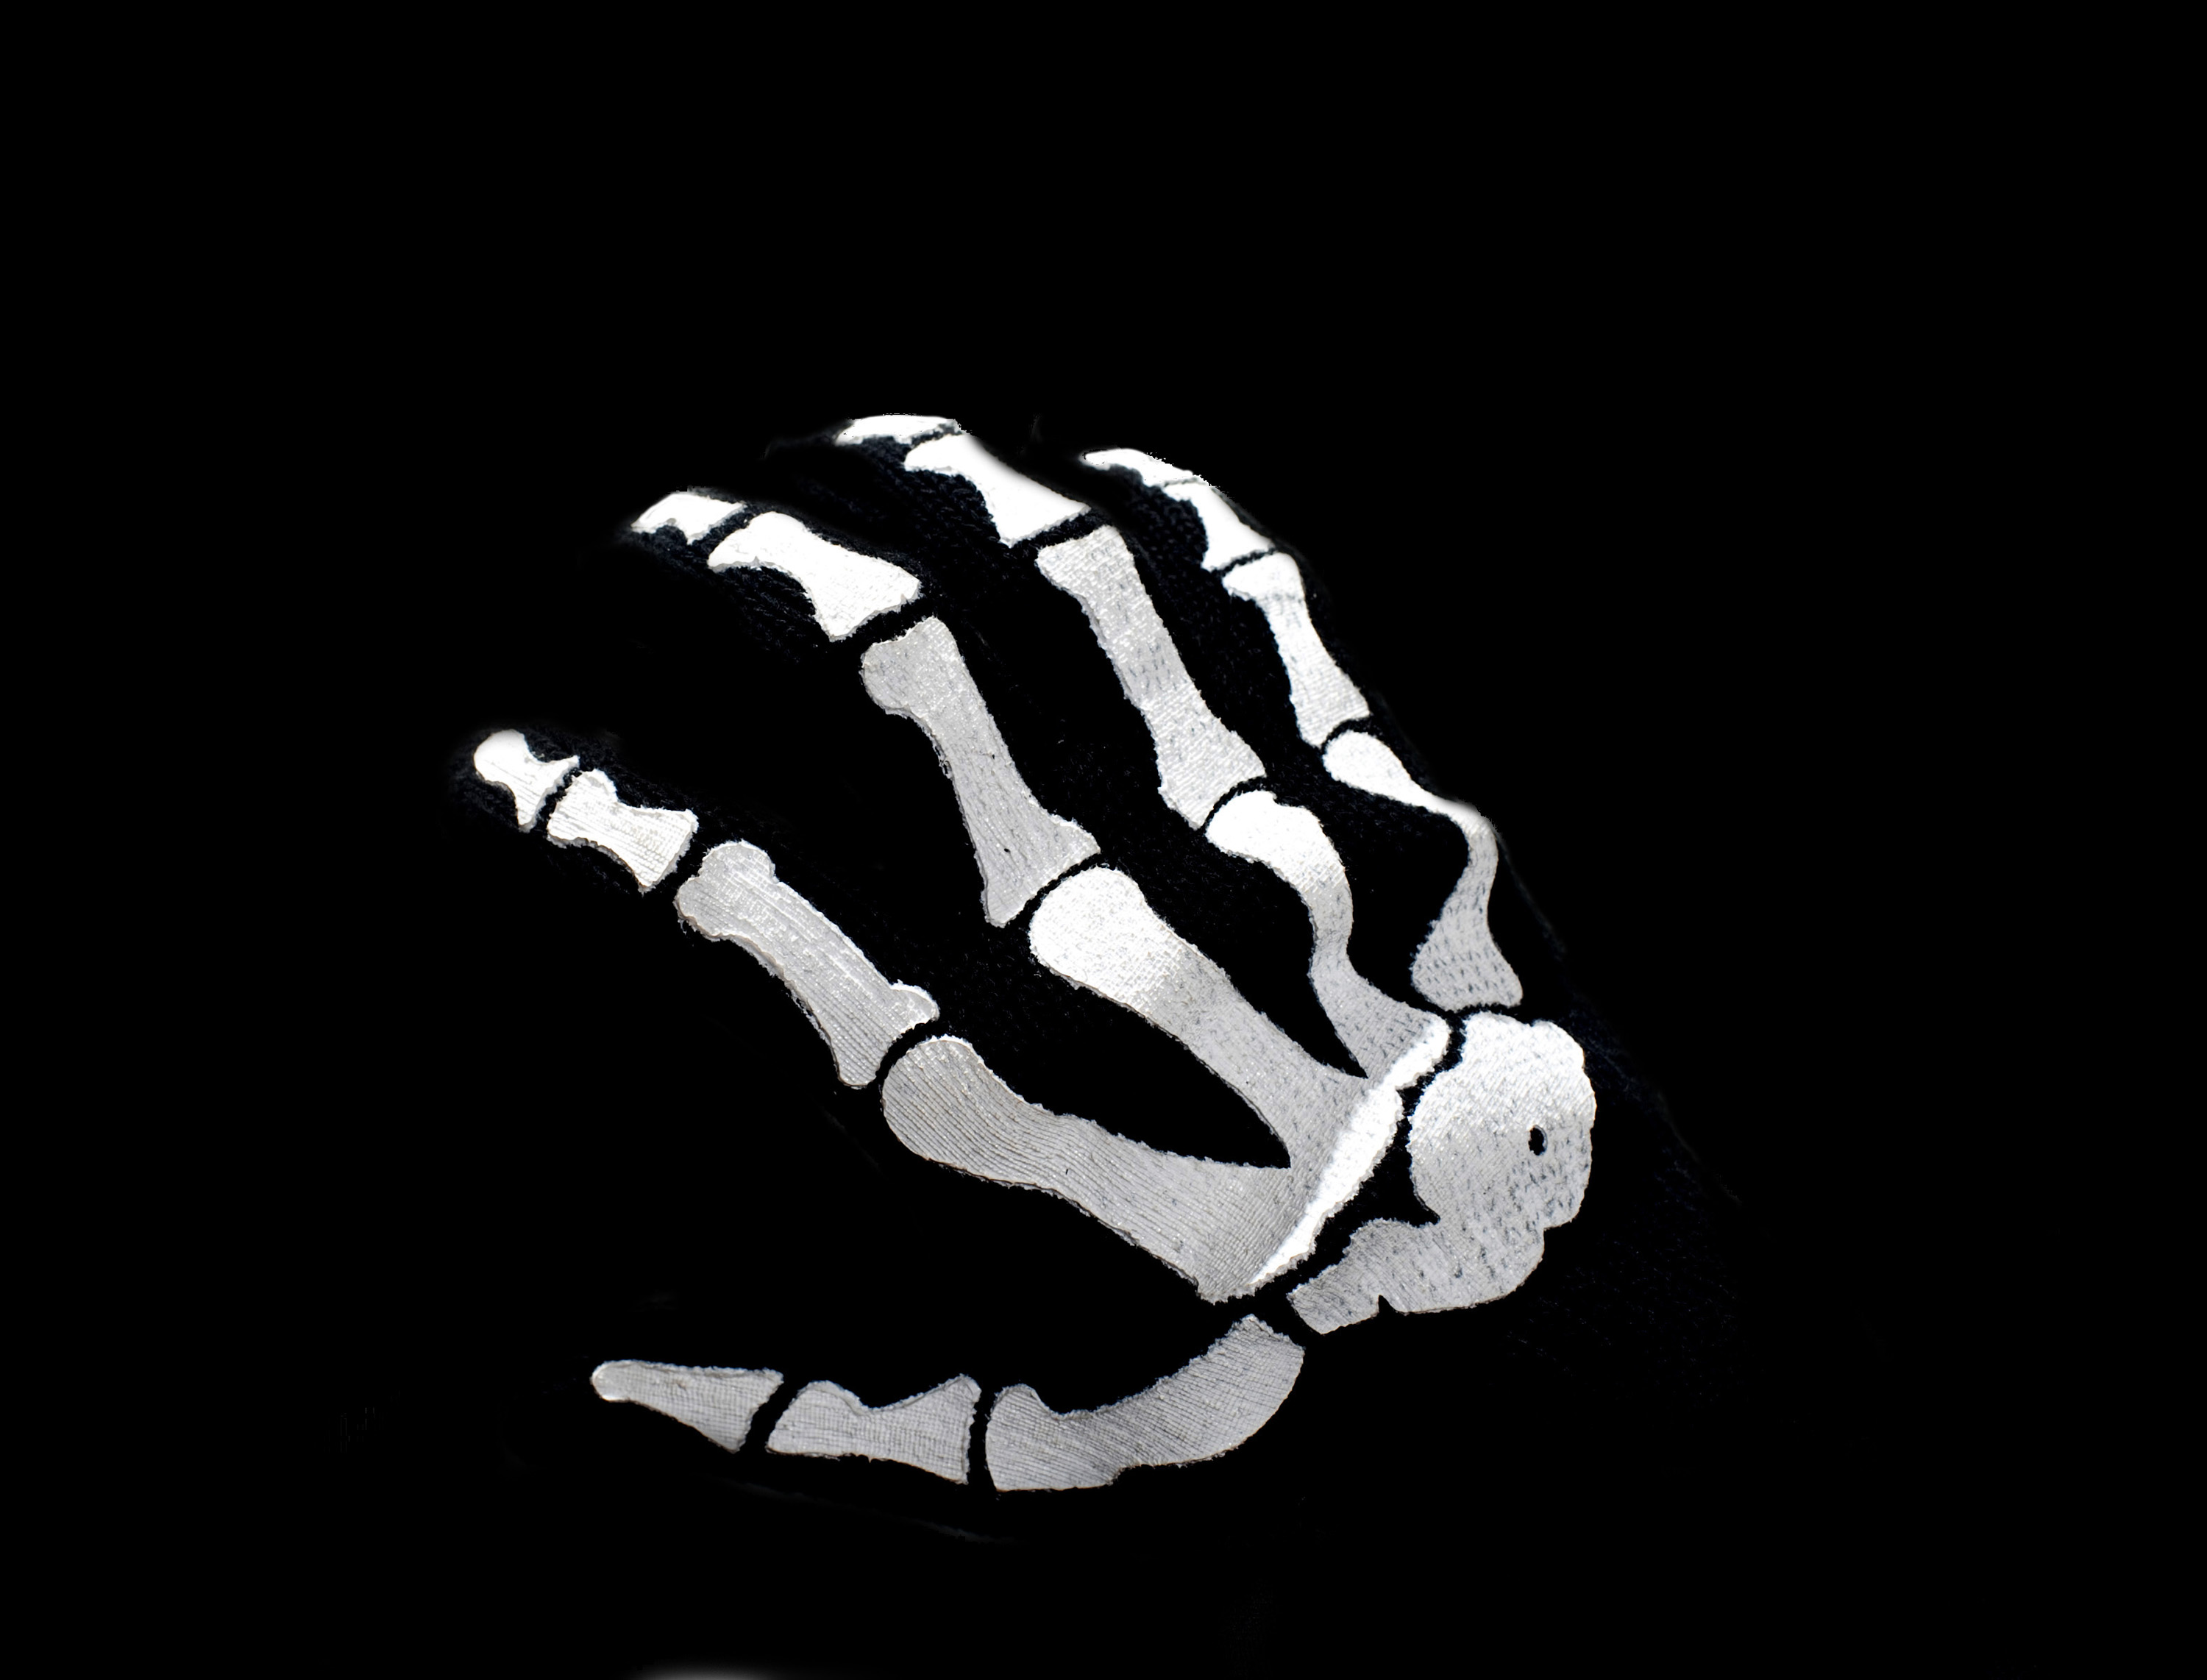 an isolated skeleton hand on black background